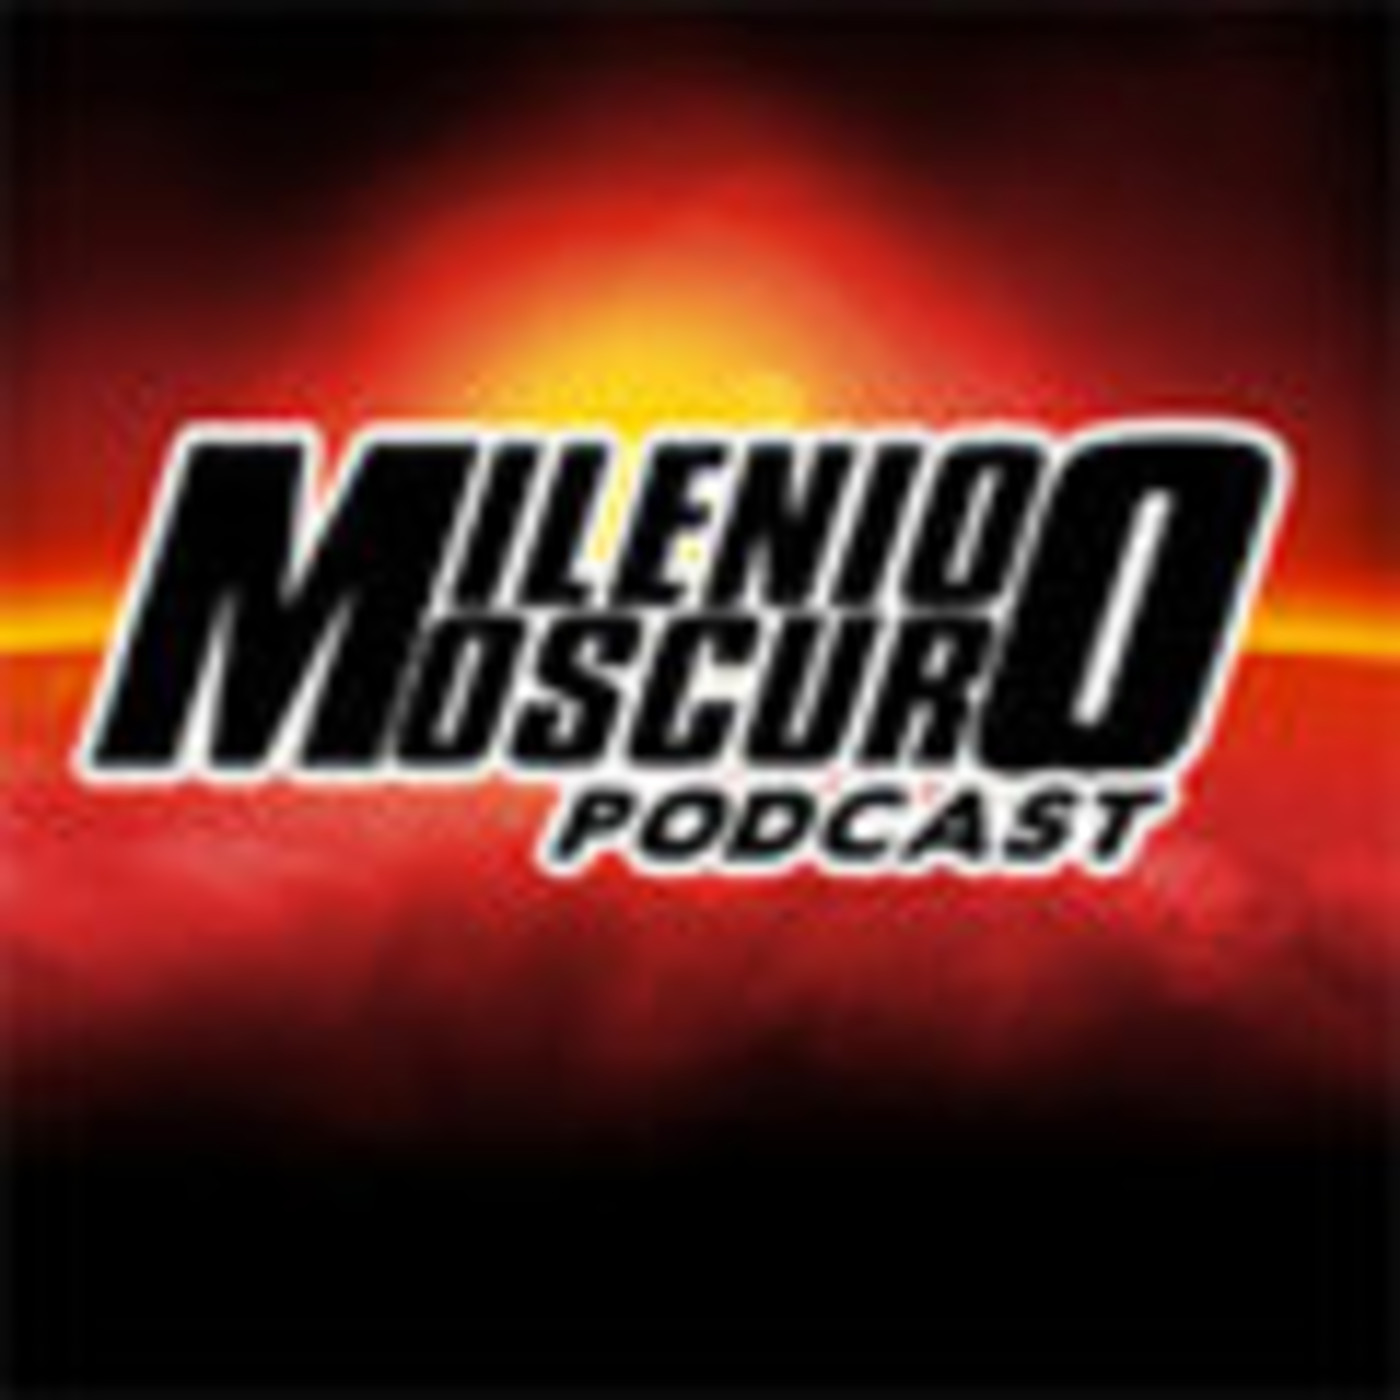 Milenio Oscuro Podcast